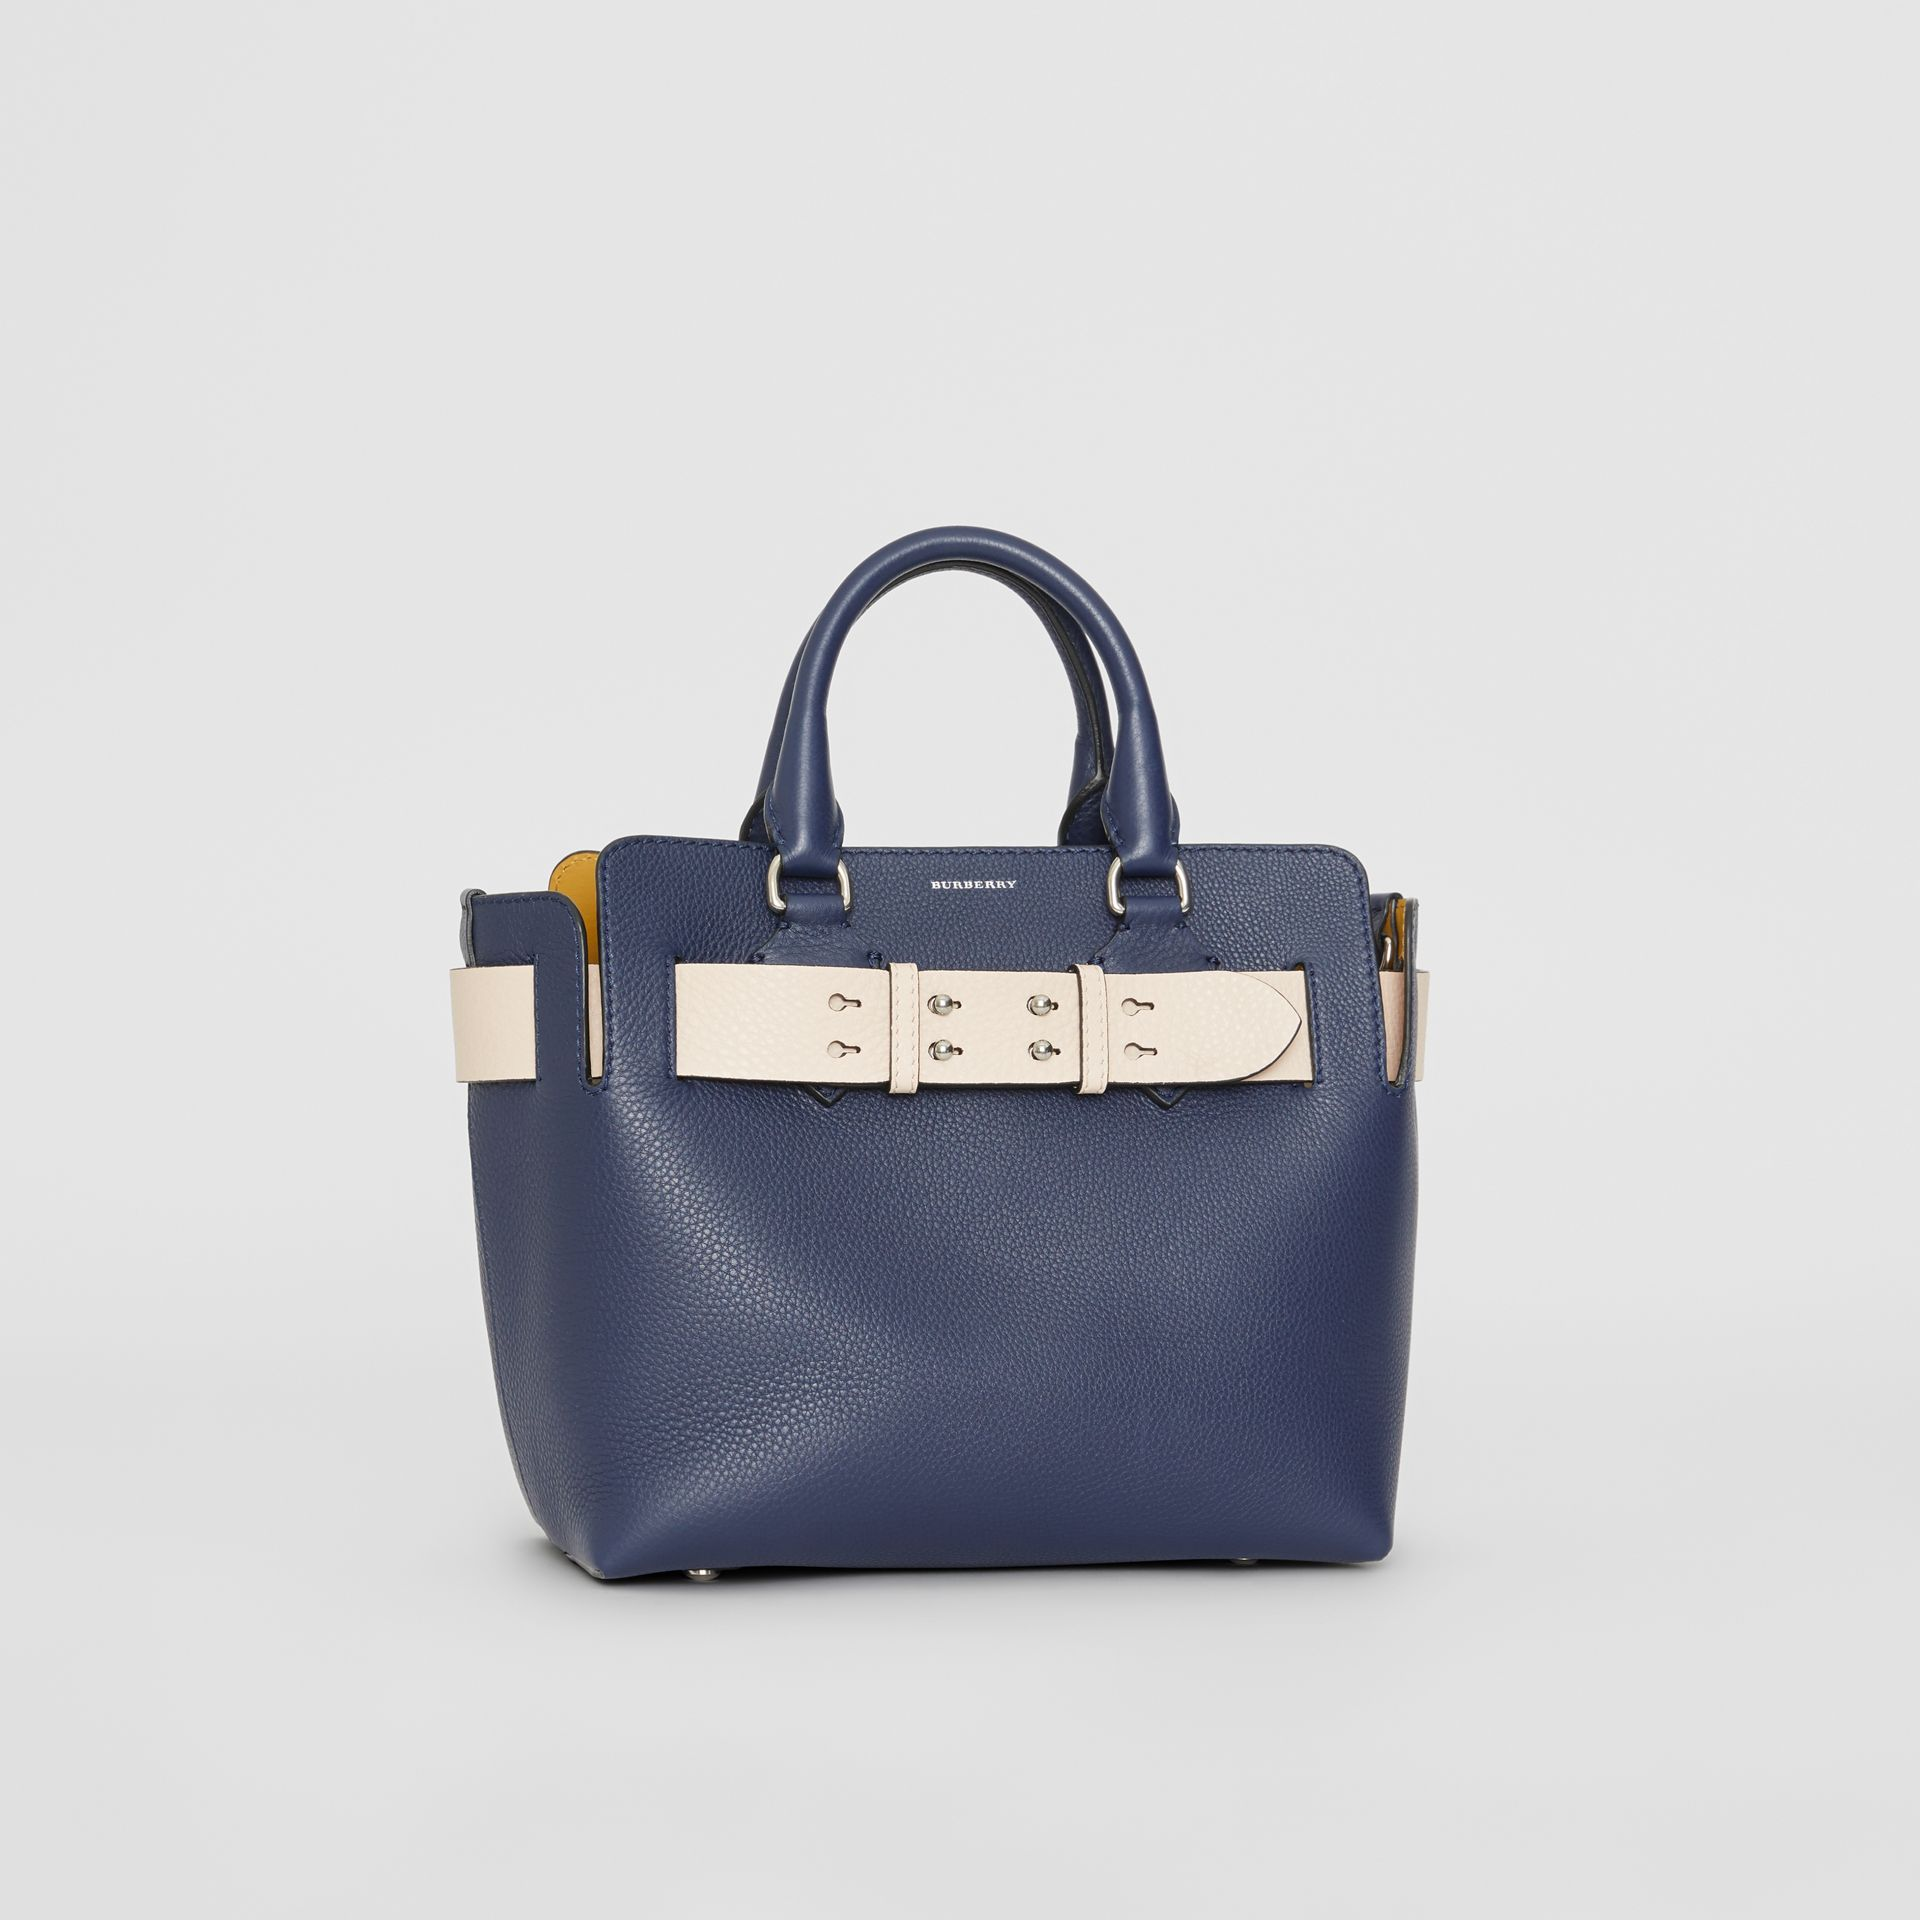 Petit sac The Belt en cuir (Bleu Régence) - Femme | Burberry - photo de la galerie 6